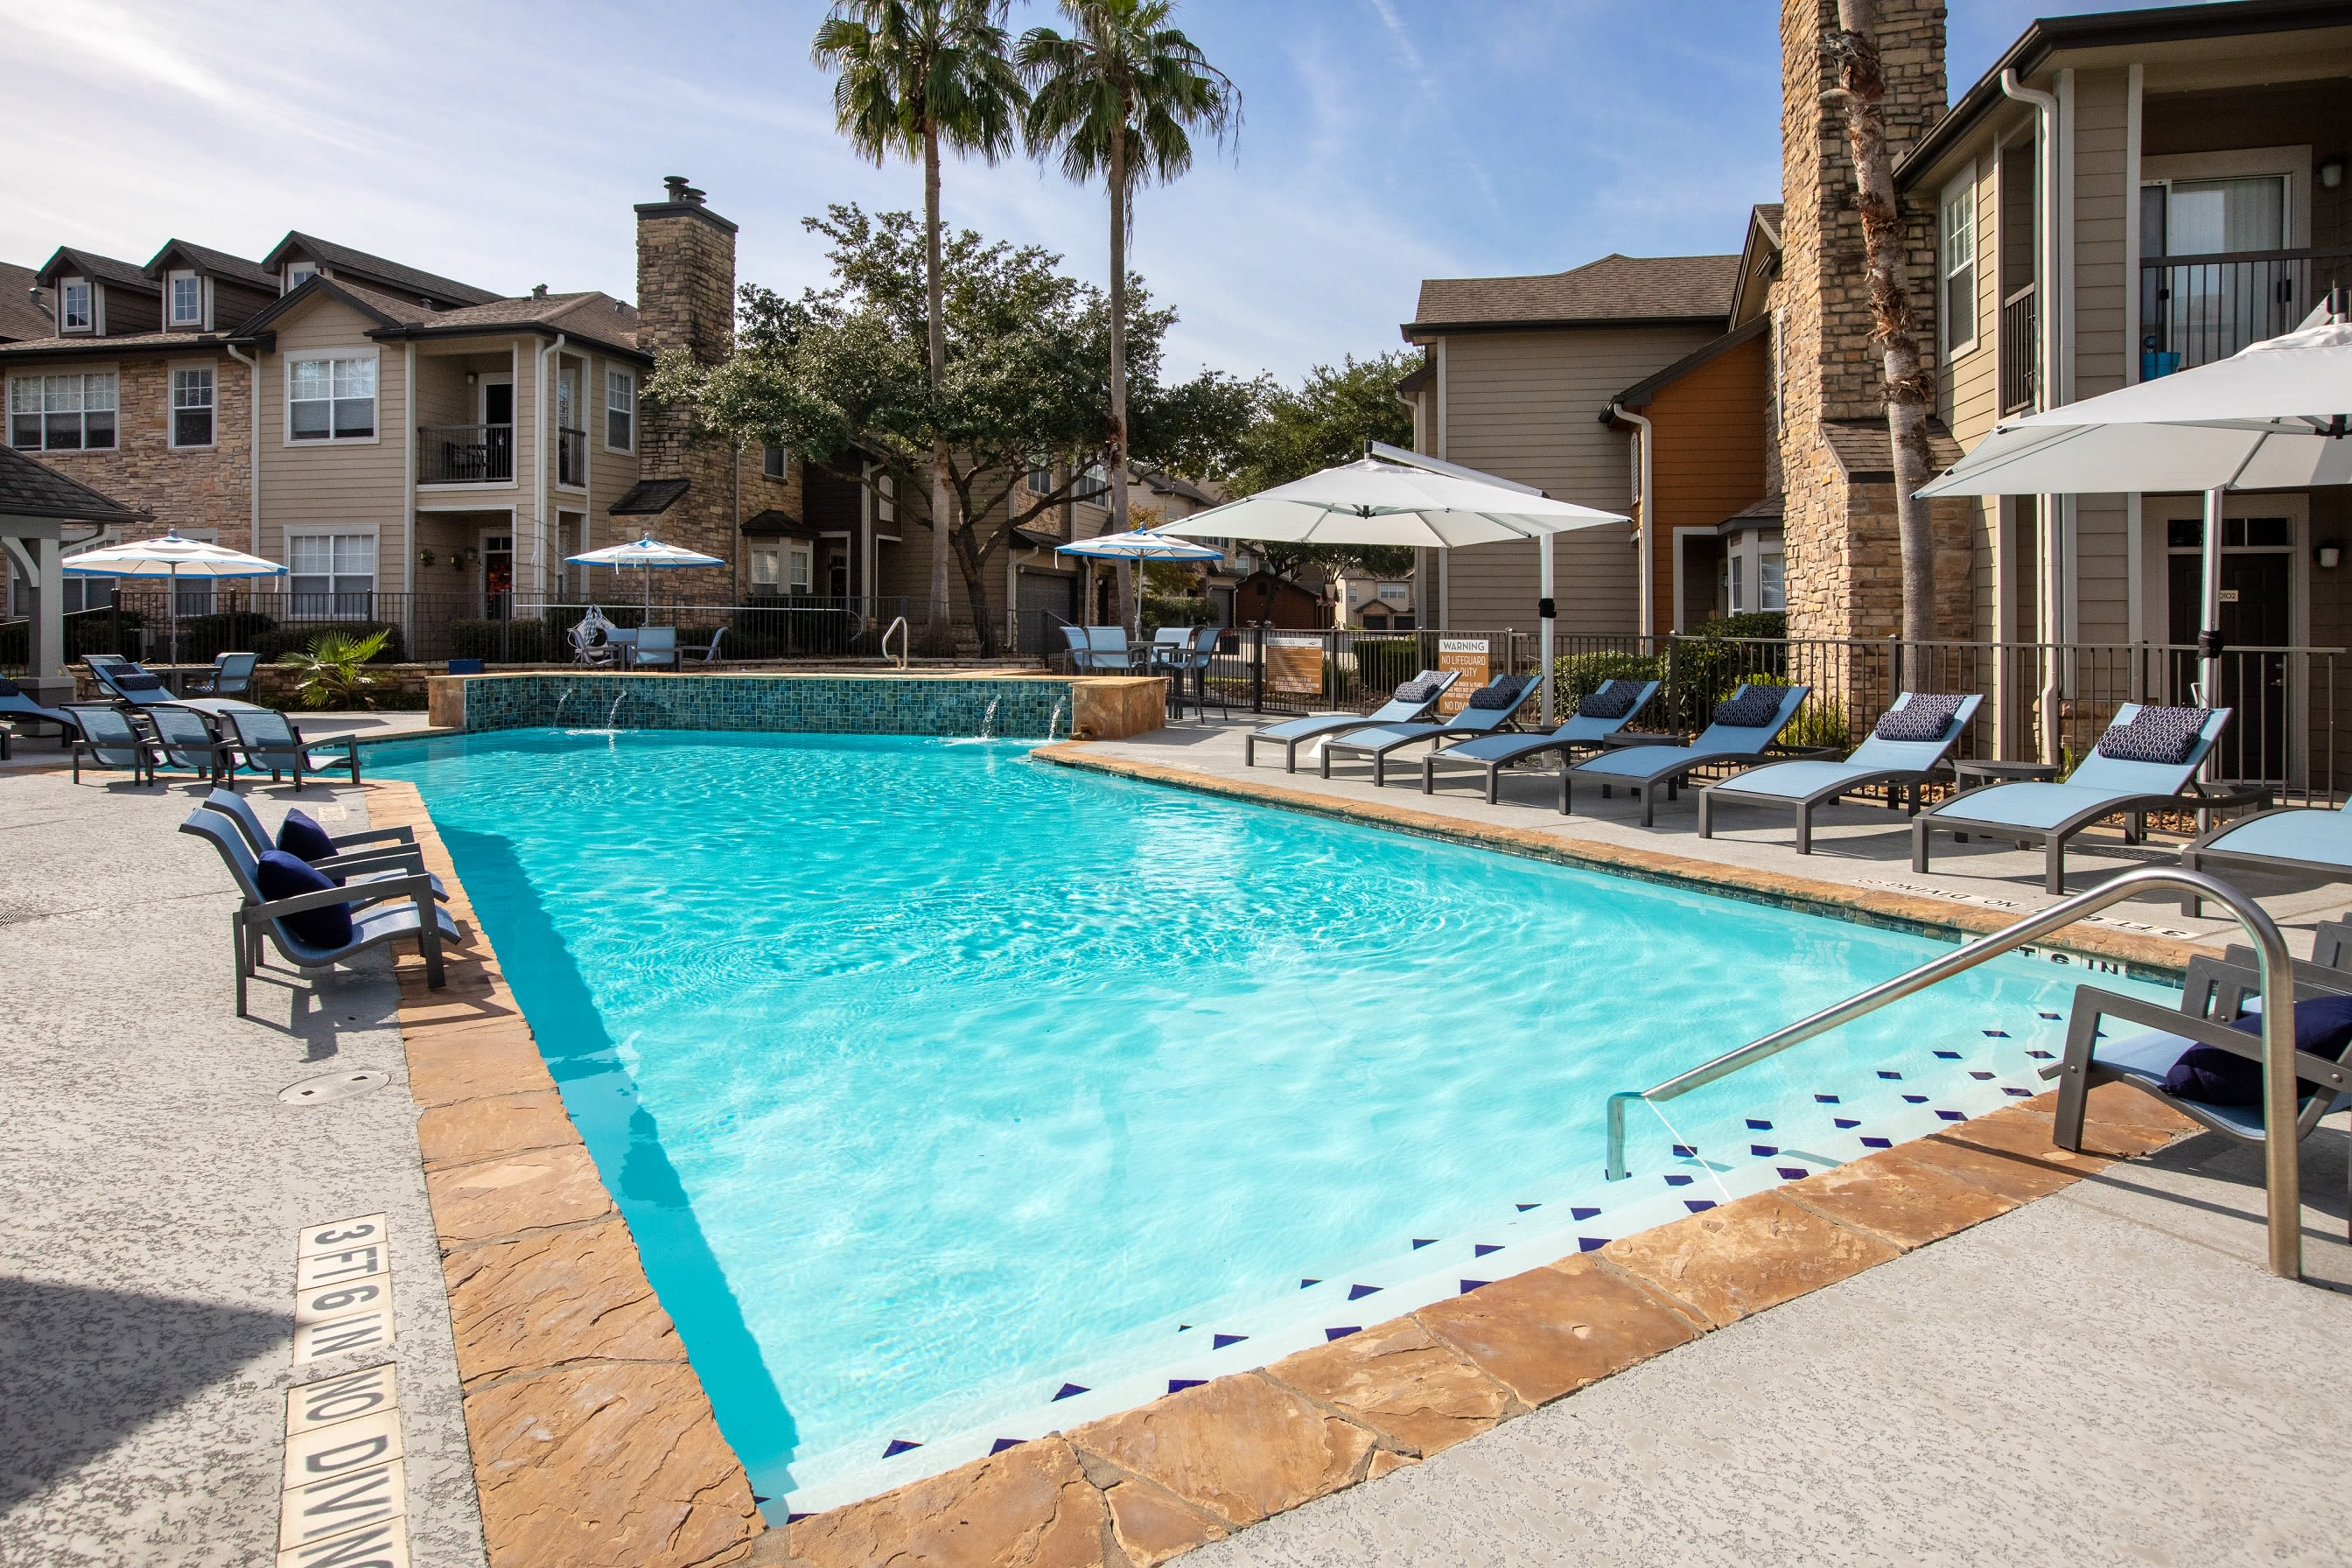 Heated and inviting outdoor pool at Artisan at Lake Wyndemere in The Woodlands, Texas